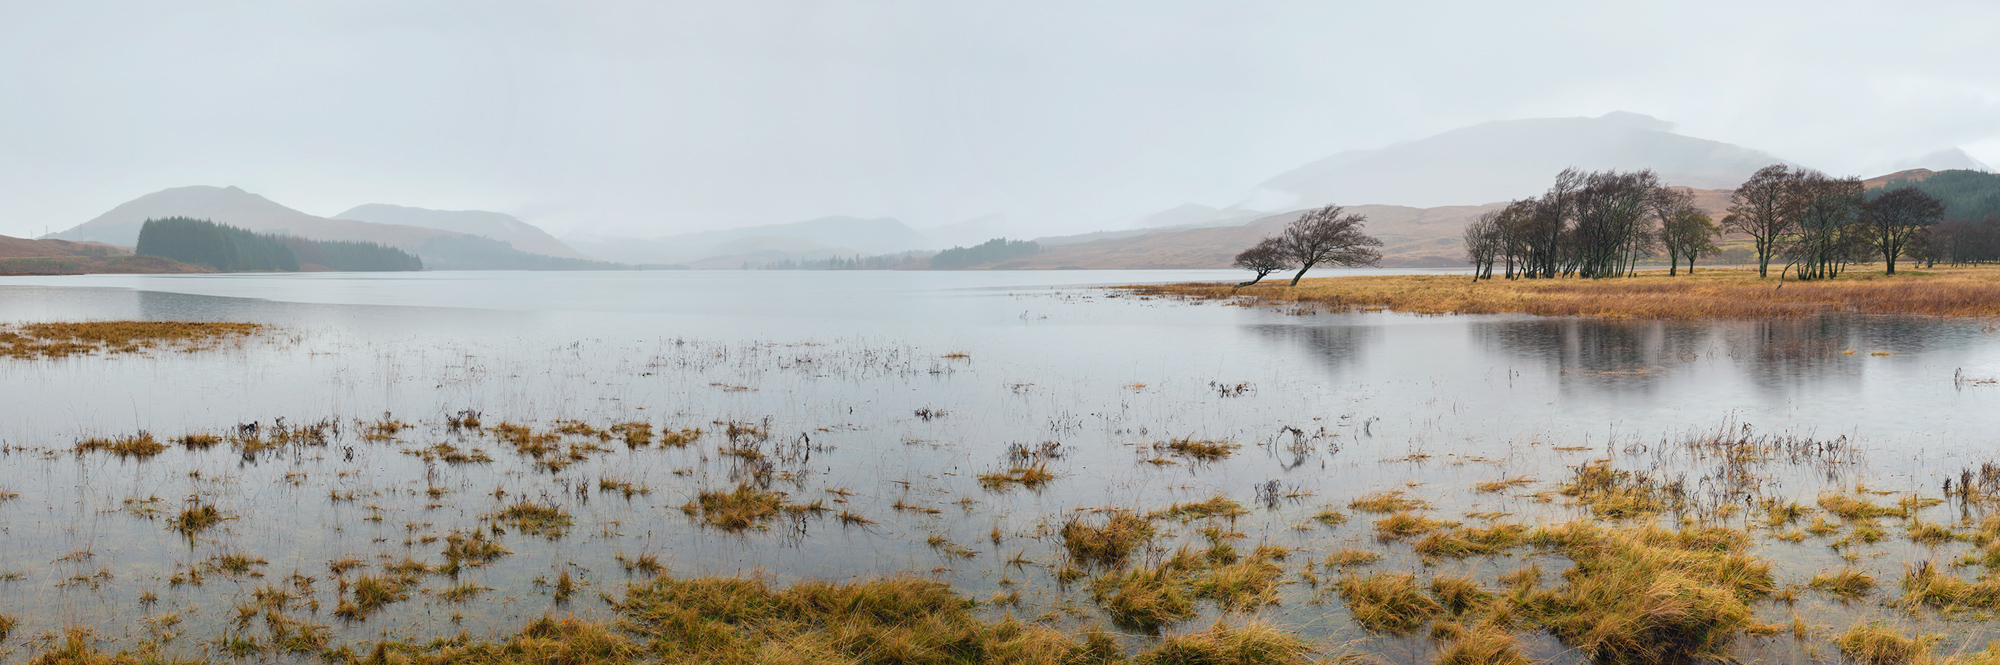 Tulla Mist Pano, Loch Tulla, Bridge of Orchy, Scotland, wind, scuplted, trees, submerged, surrounded, water, mist, white, photo